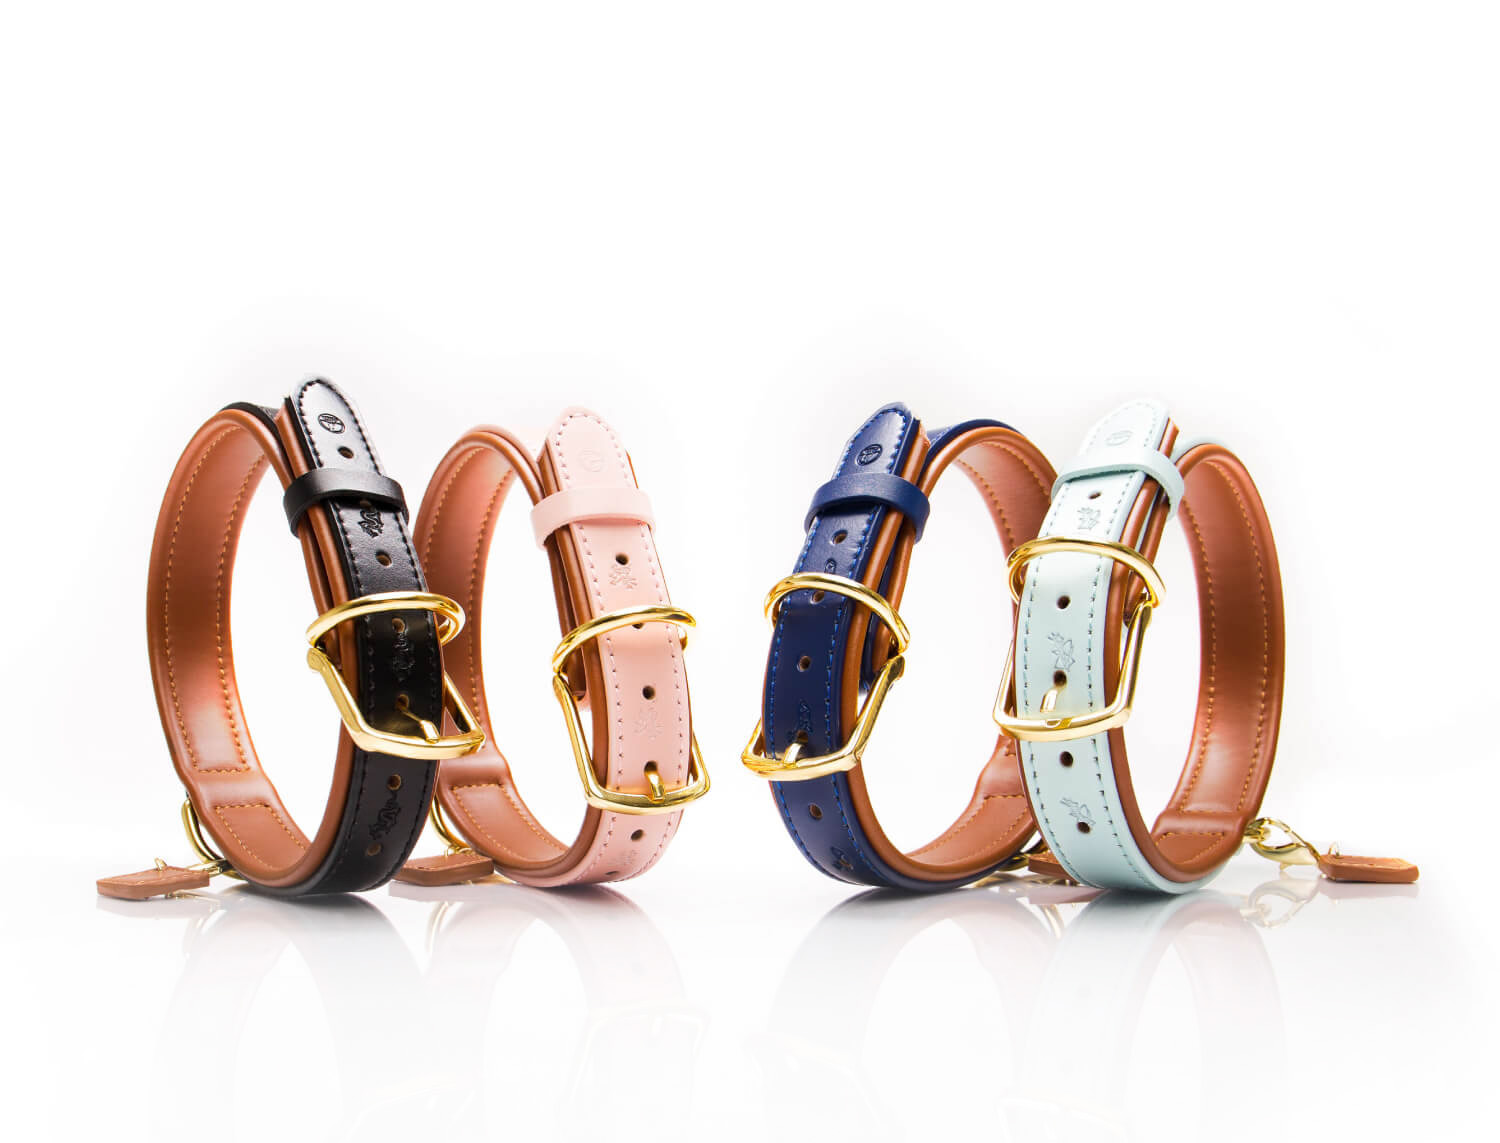 Designer Dog Collar Collection - Canis Stellar